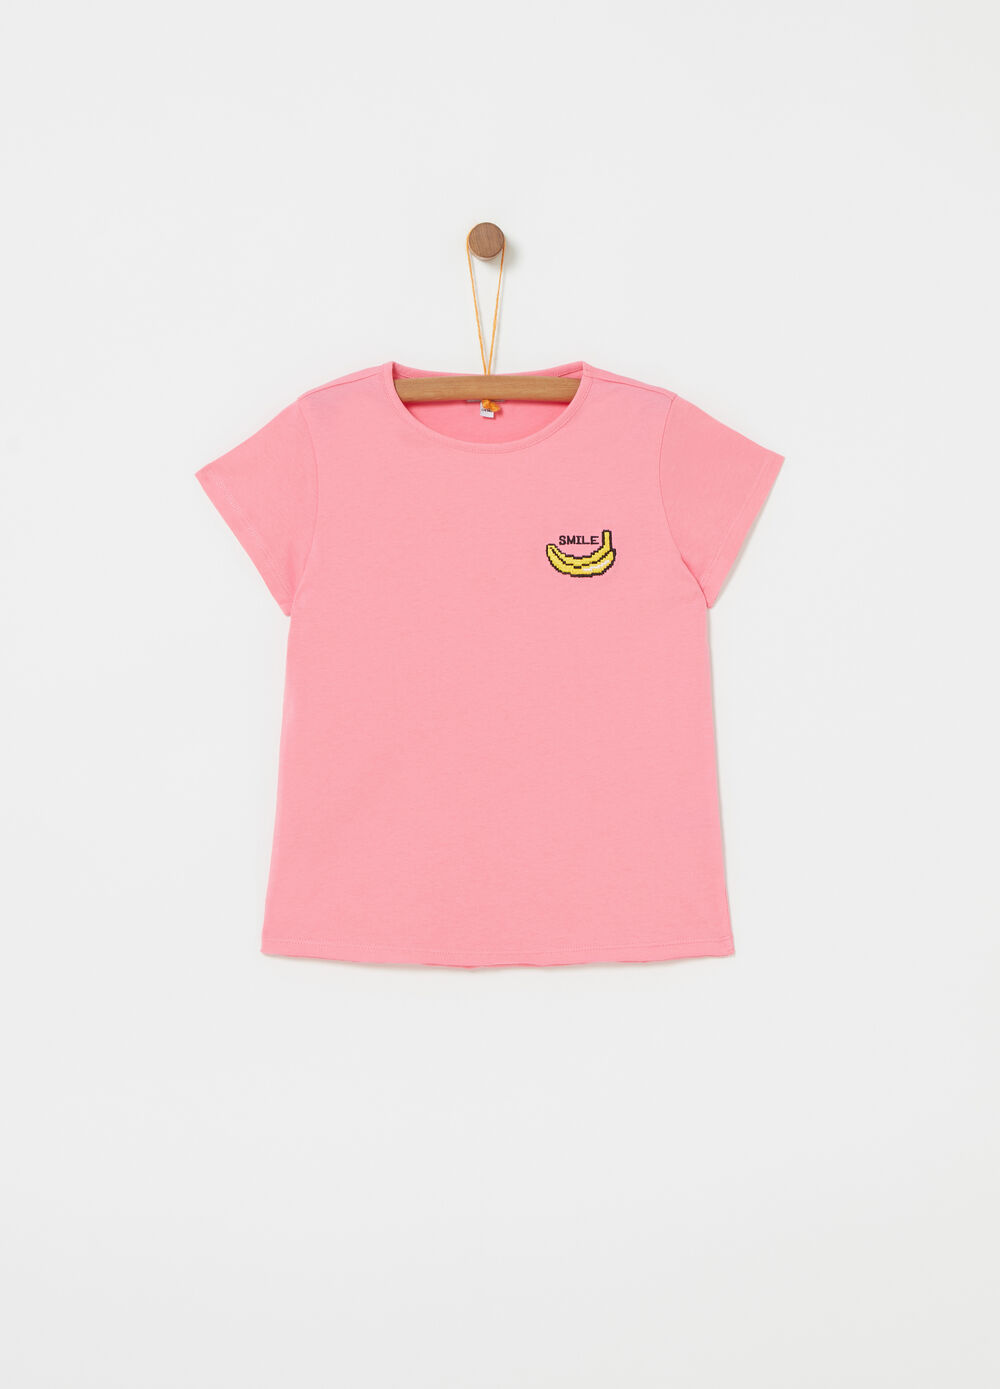 T-shirt in 100% cotton jersey with embroidery